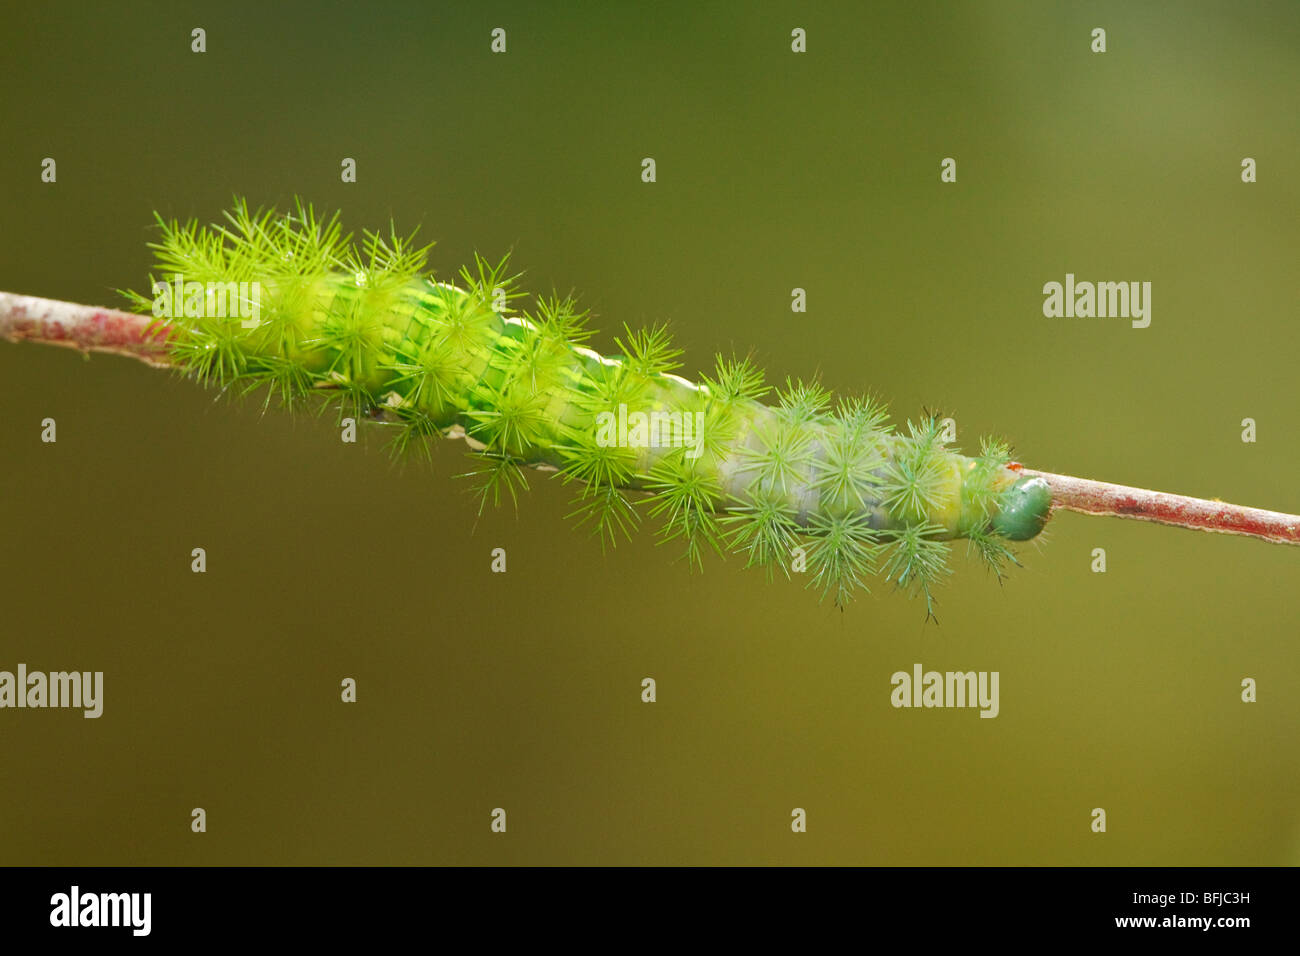 A caterpillar perched on a branch in the Milpe reserve in northwest Ecuador. - Stock Image